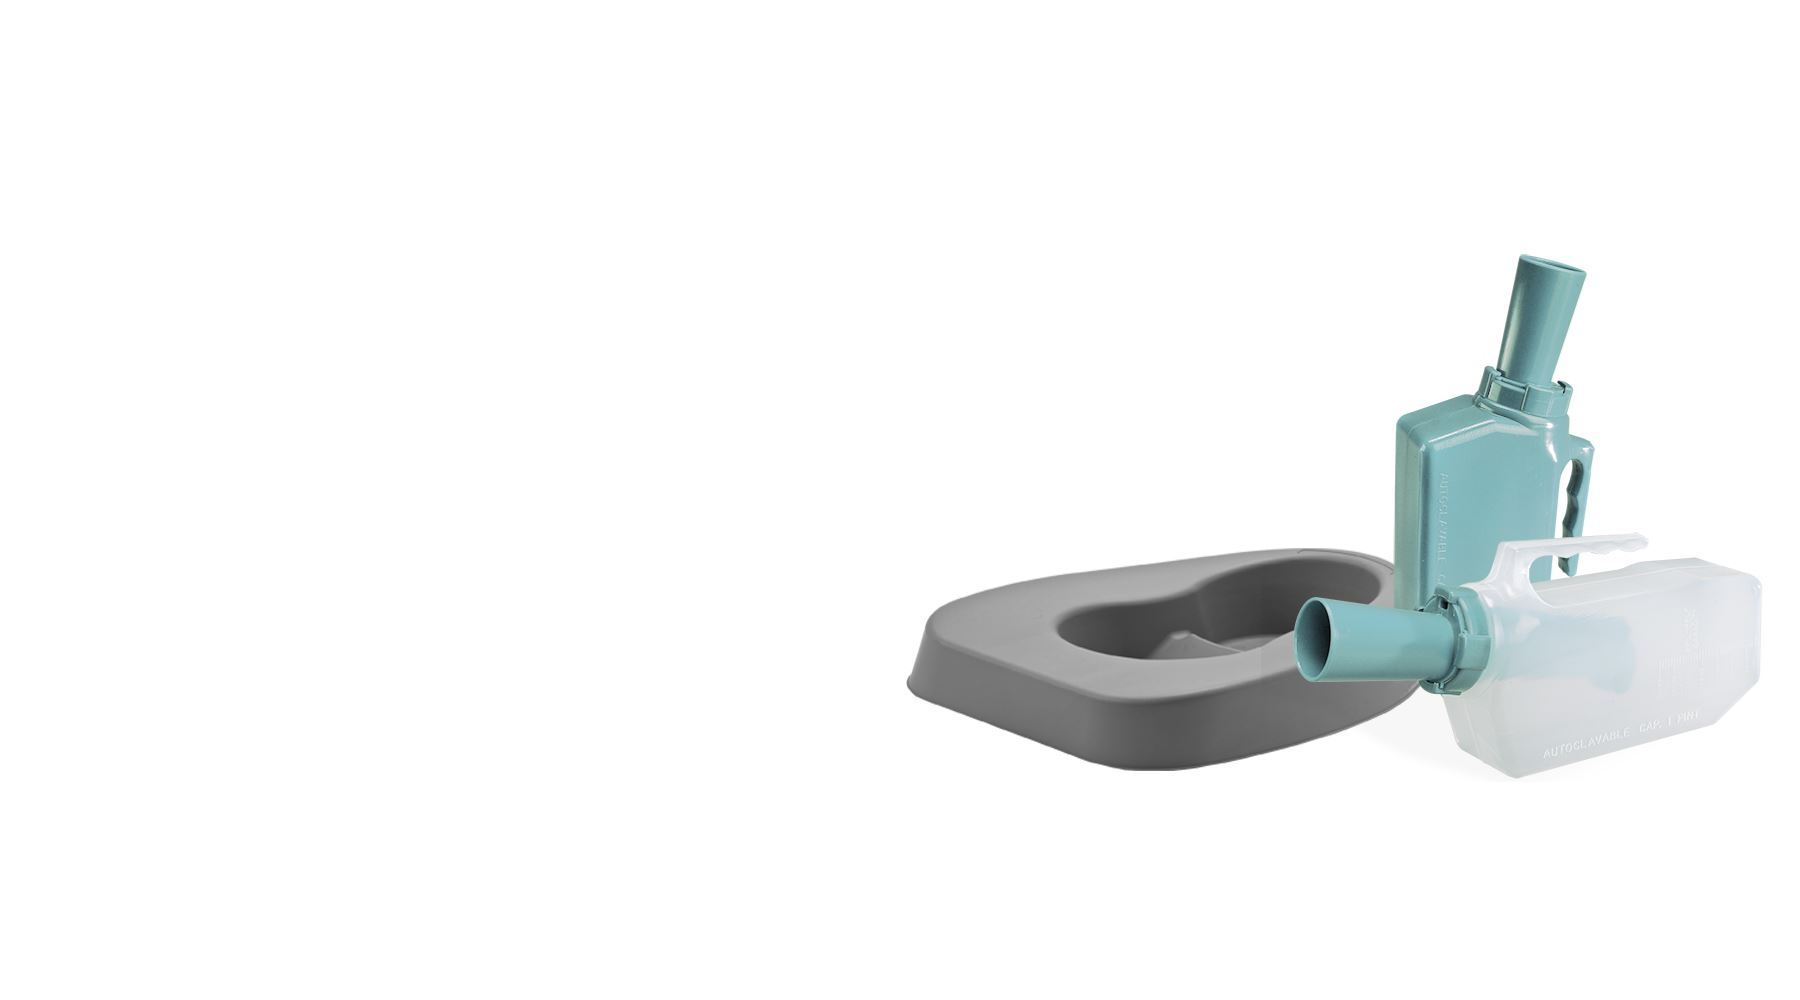 Picture for category Portable Urinals & Bedpans